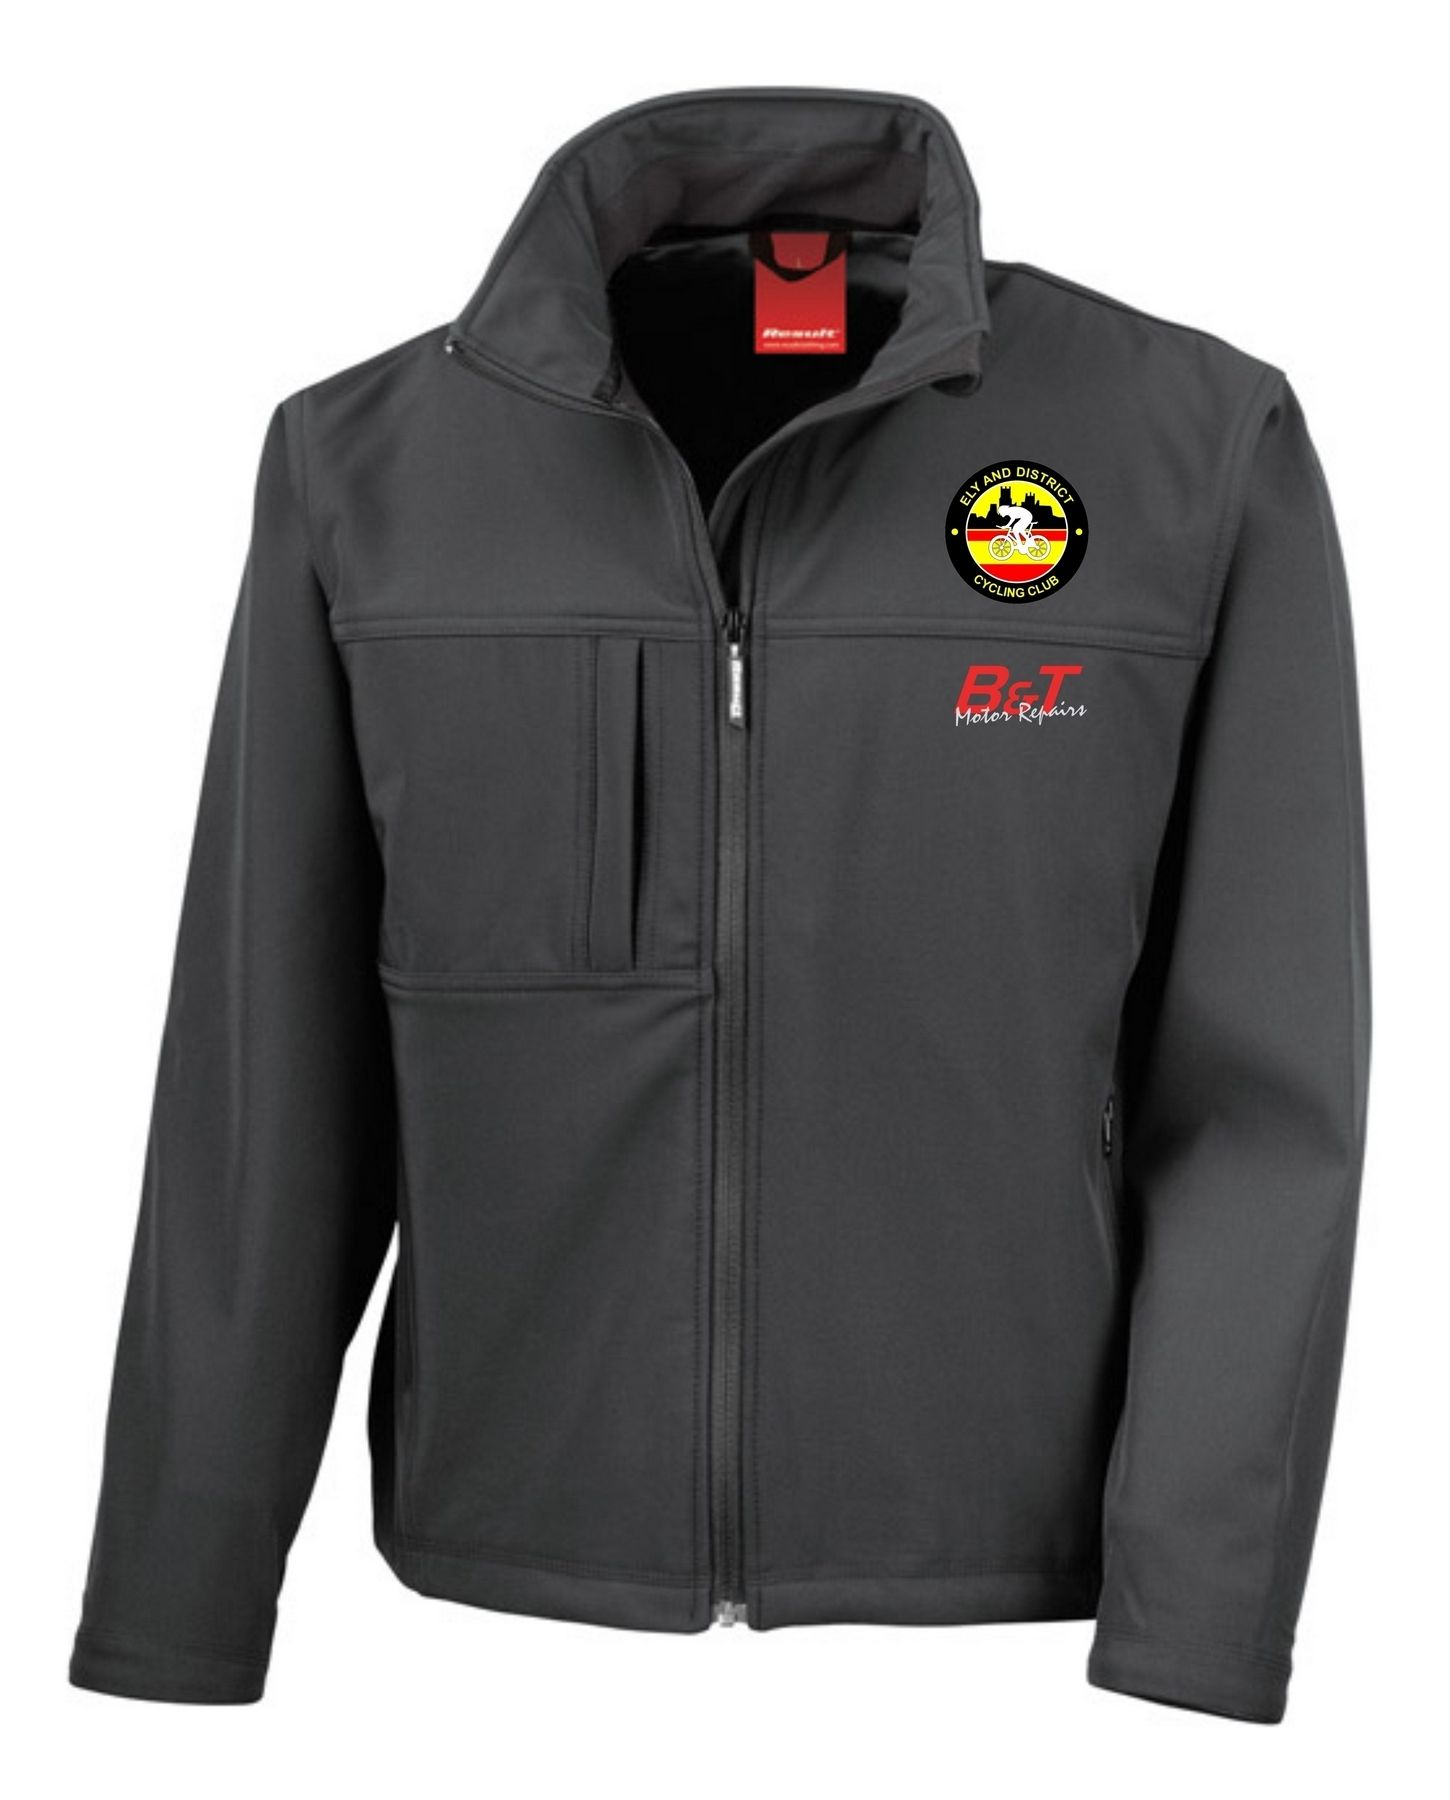 EDCC – Classic Softshell Jacket in Black